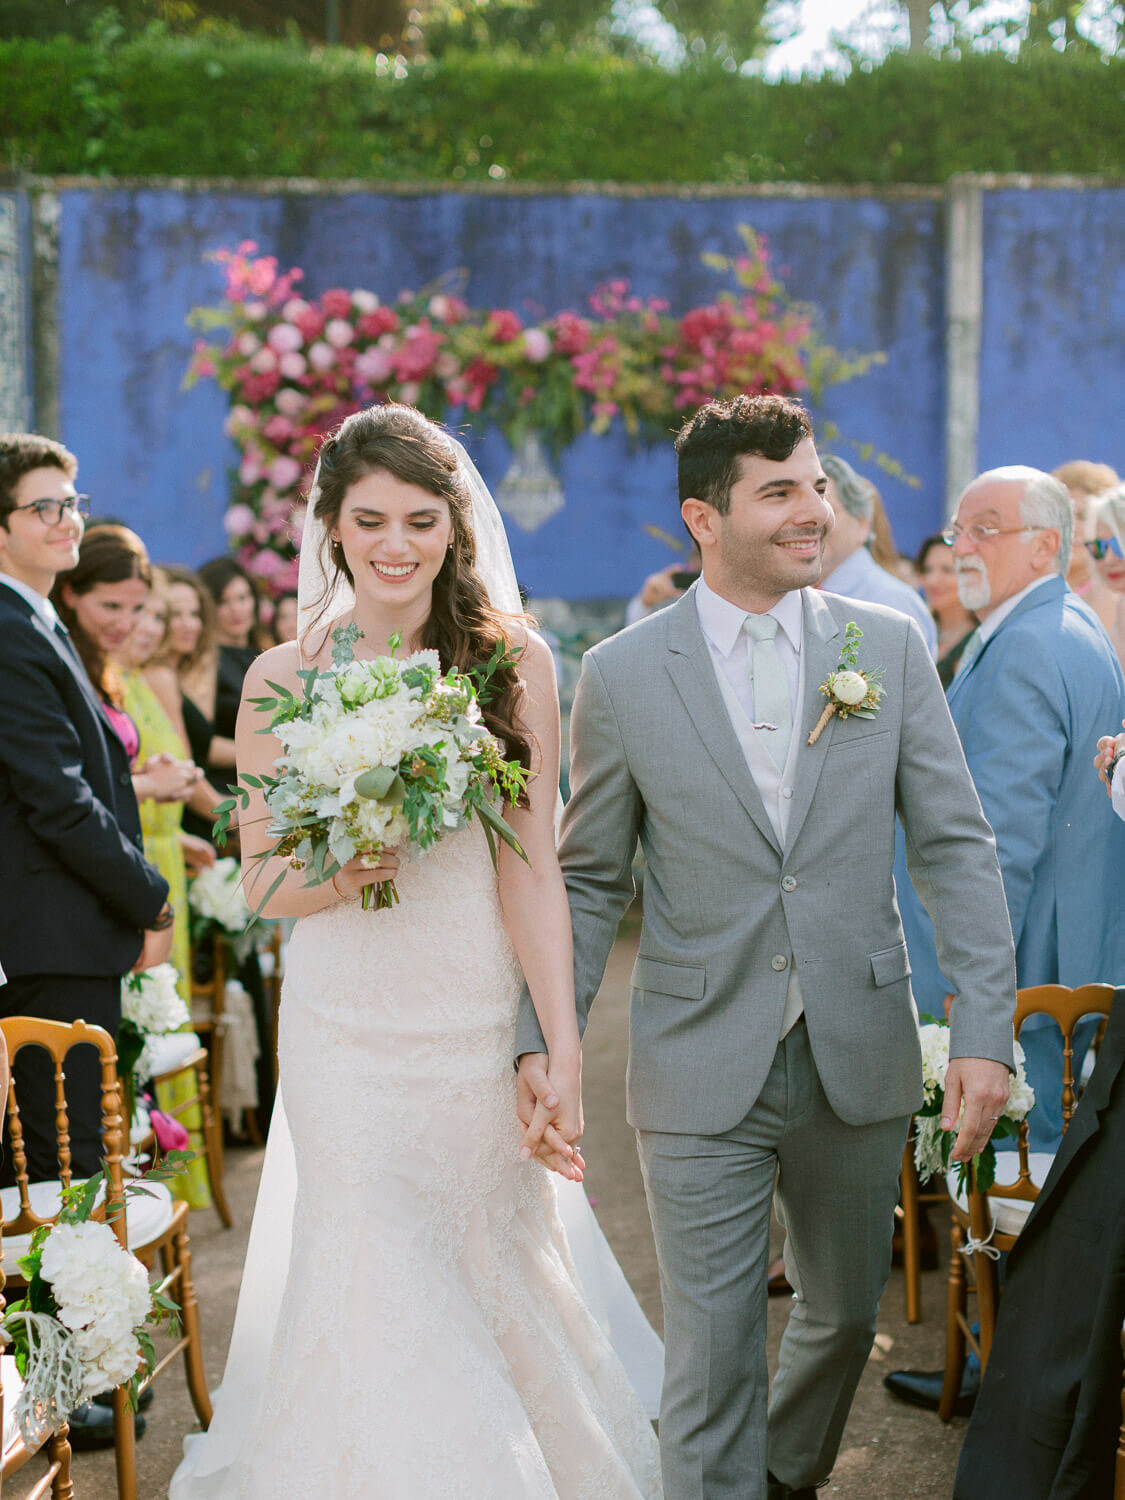 wedding ceremony finale with floral arch background by Portugal Wedding Photographer